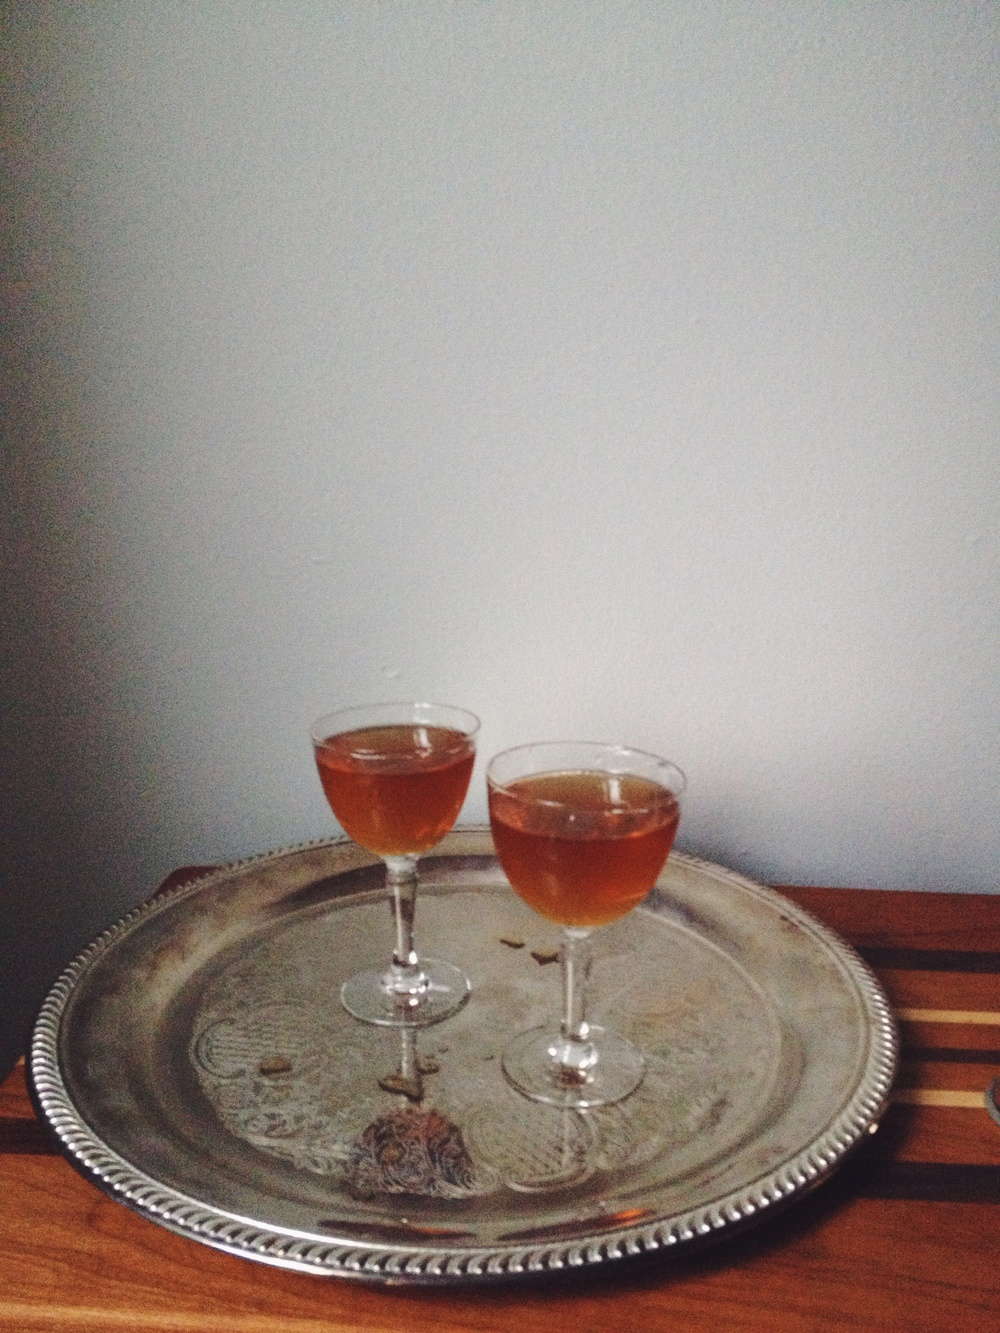 twocorpserevivers